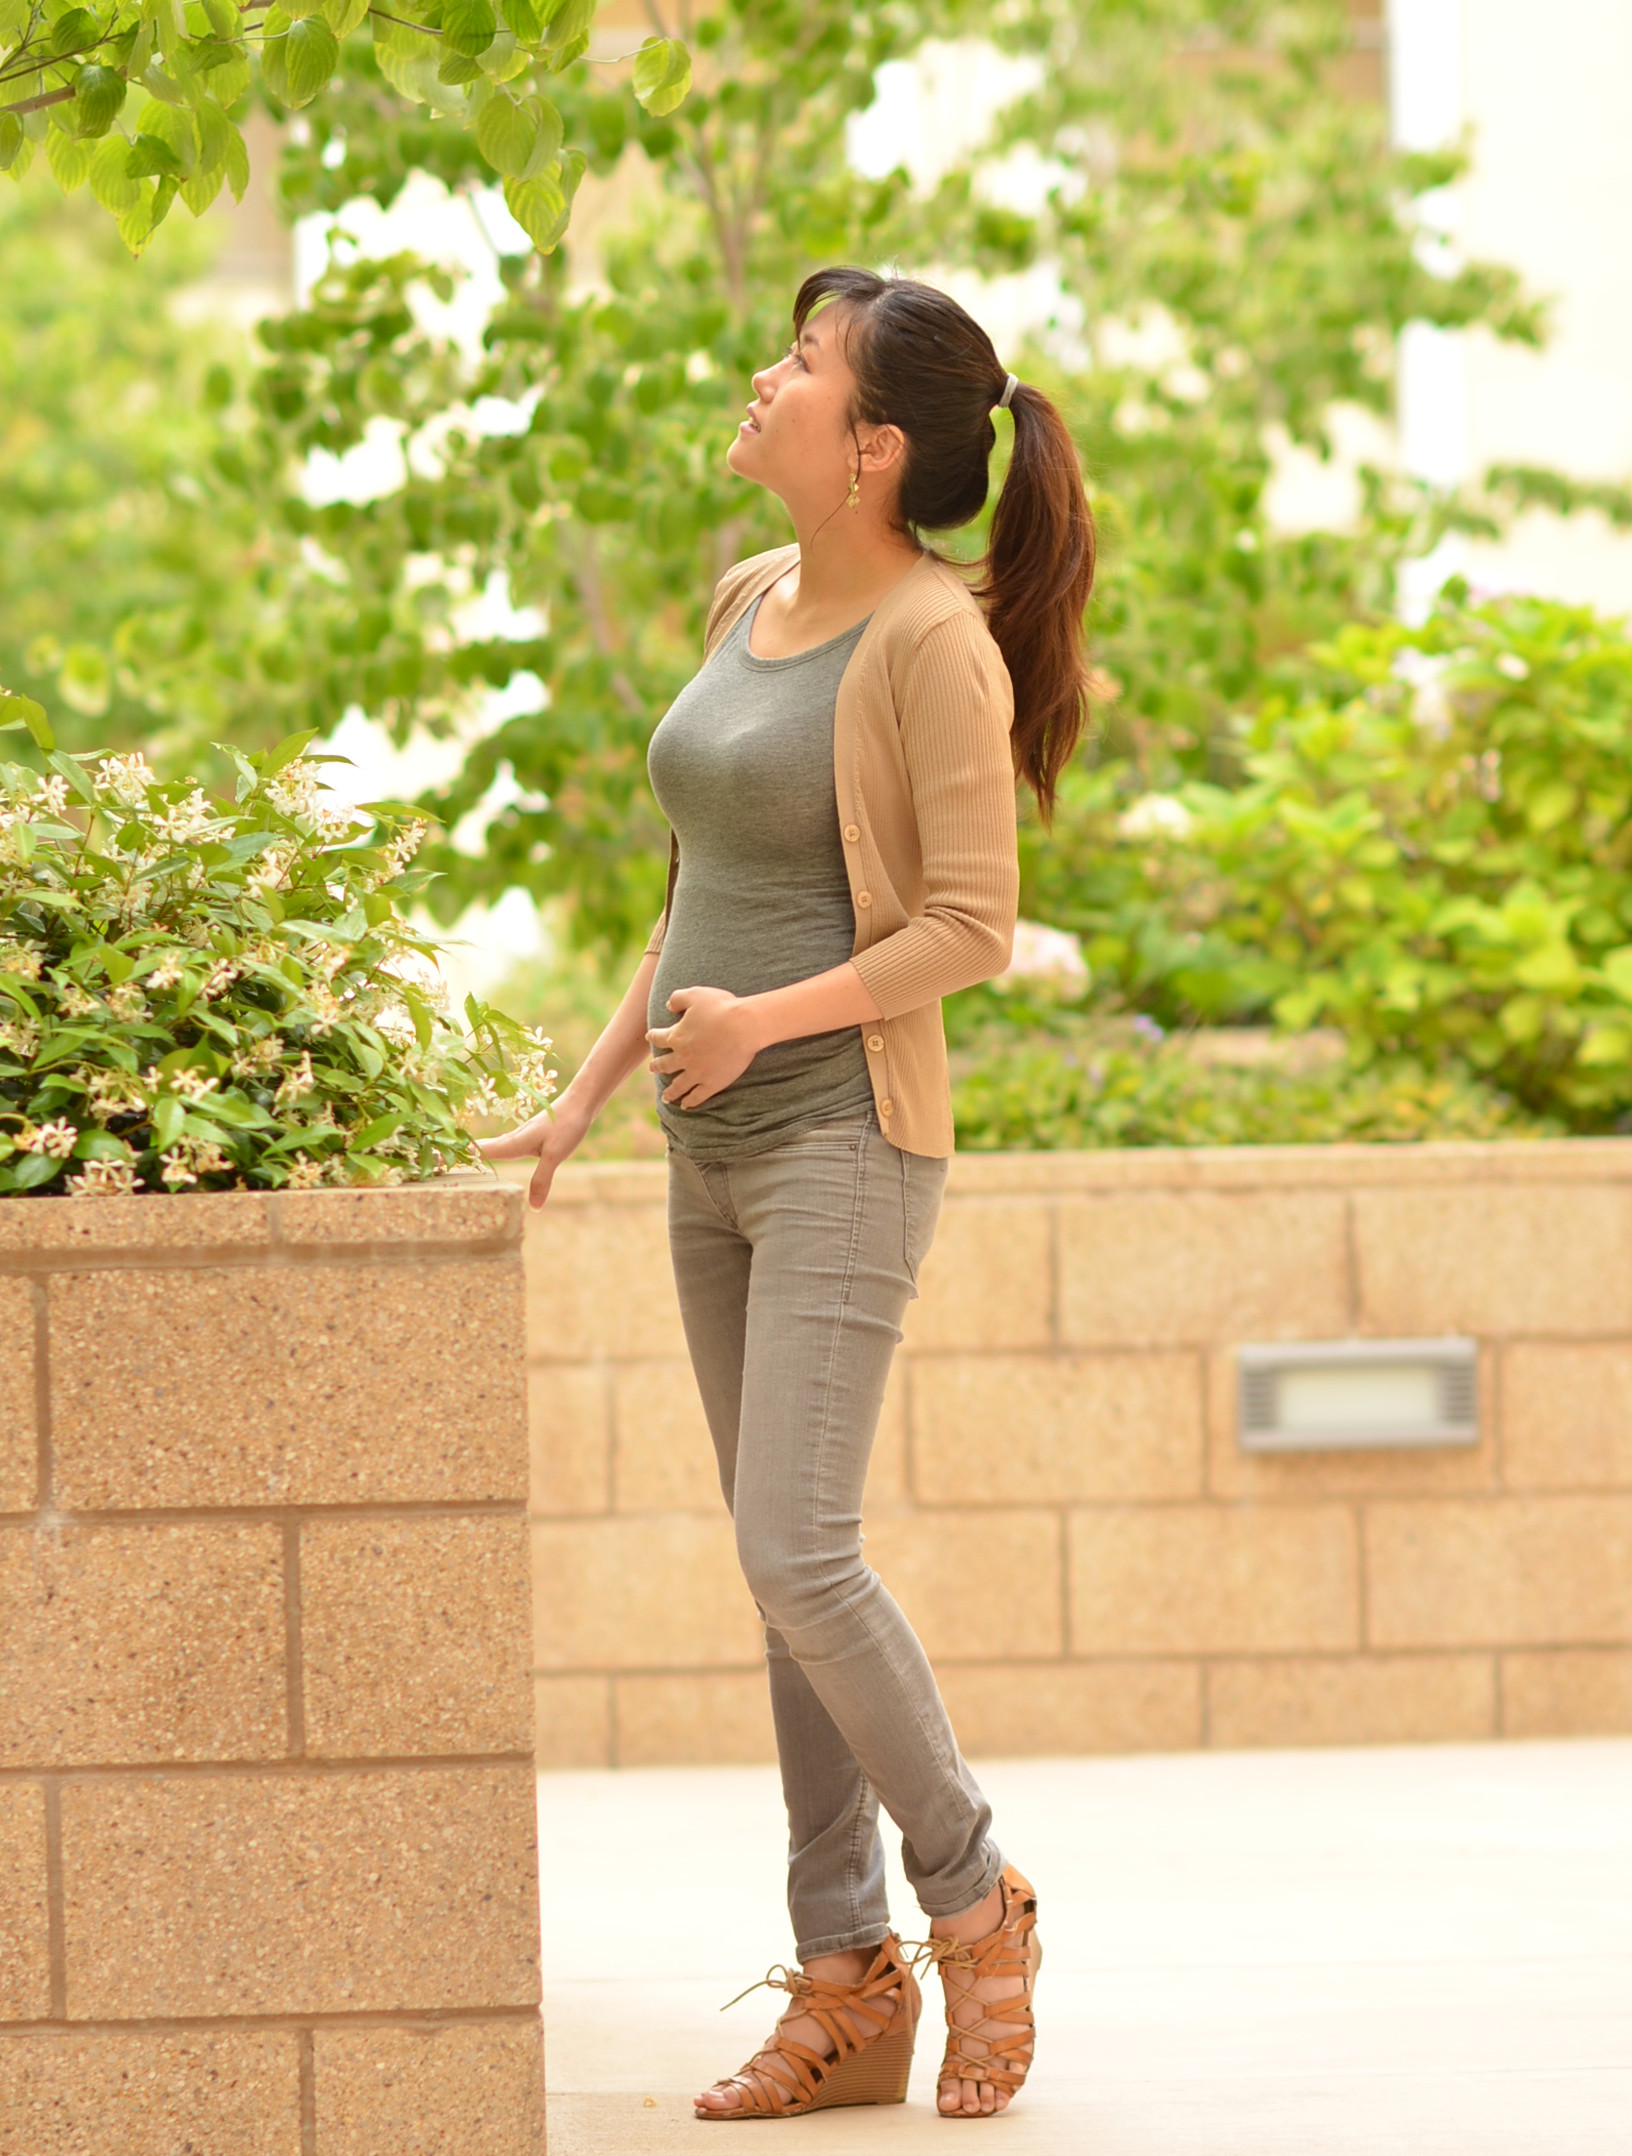 h&m mama gray maternity skinny jeans outfit